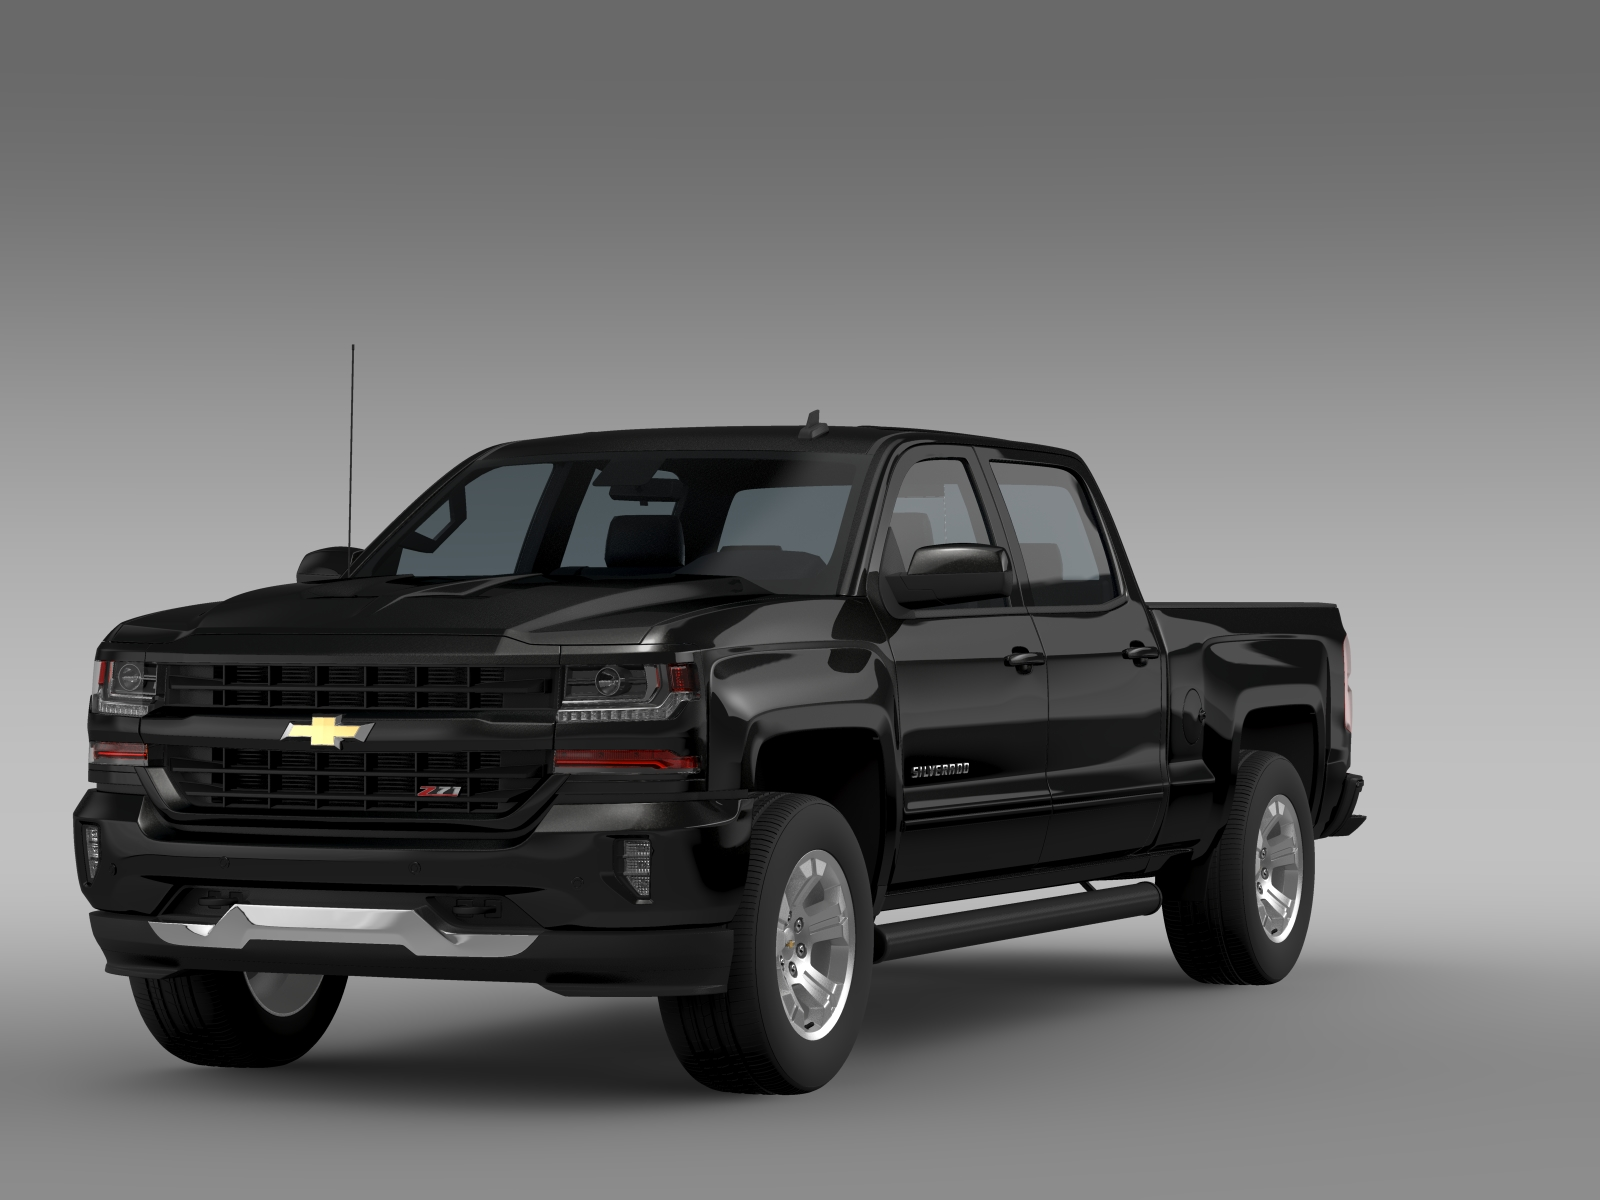 chevrolet silverado lt z71 crew cab gmtk2 standart 3d model buy chevrolet silverado lt z71. Black Bedroom Furniture Sets. Home Design Ideas